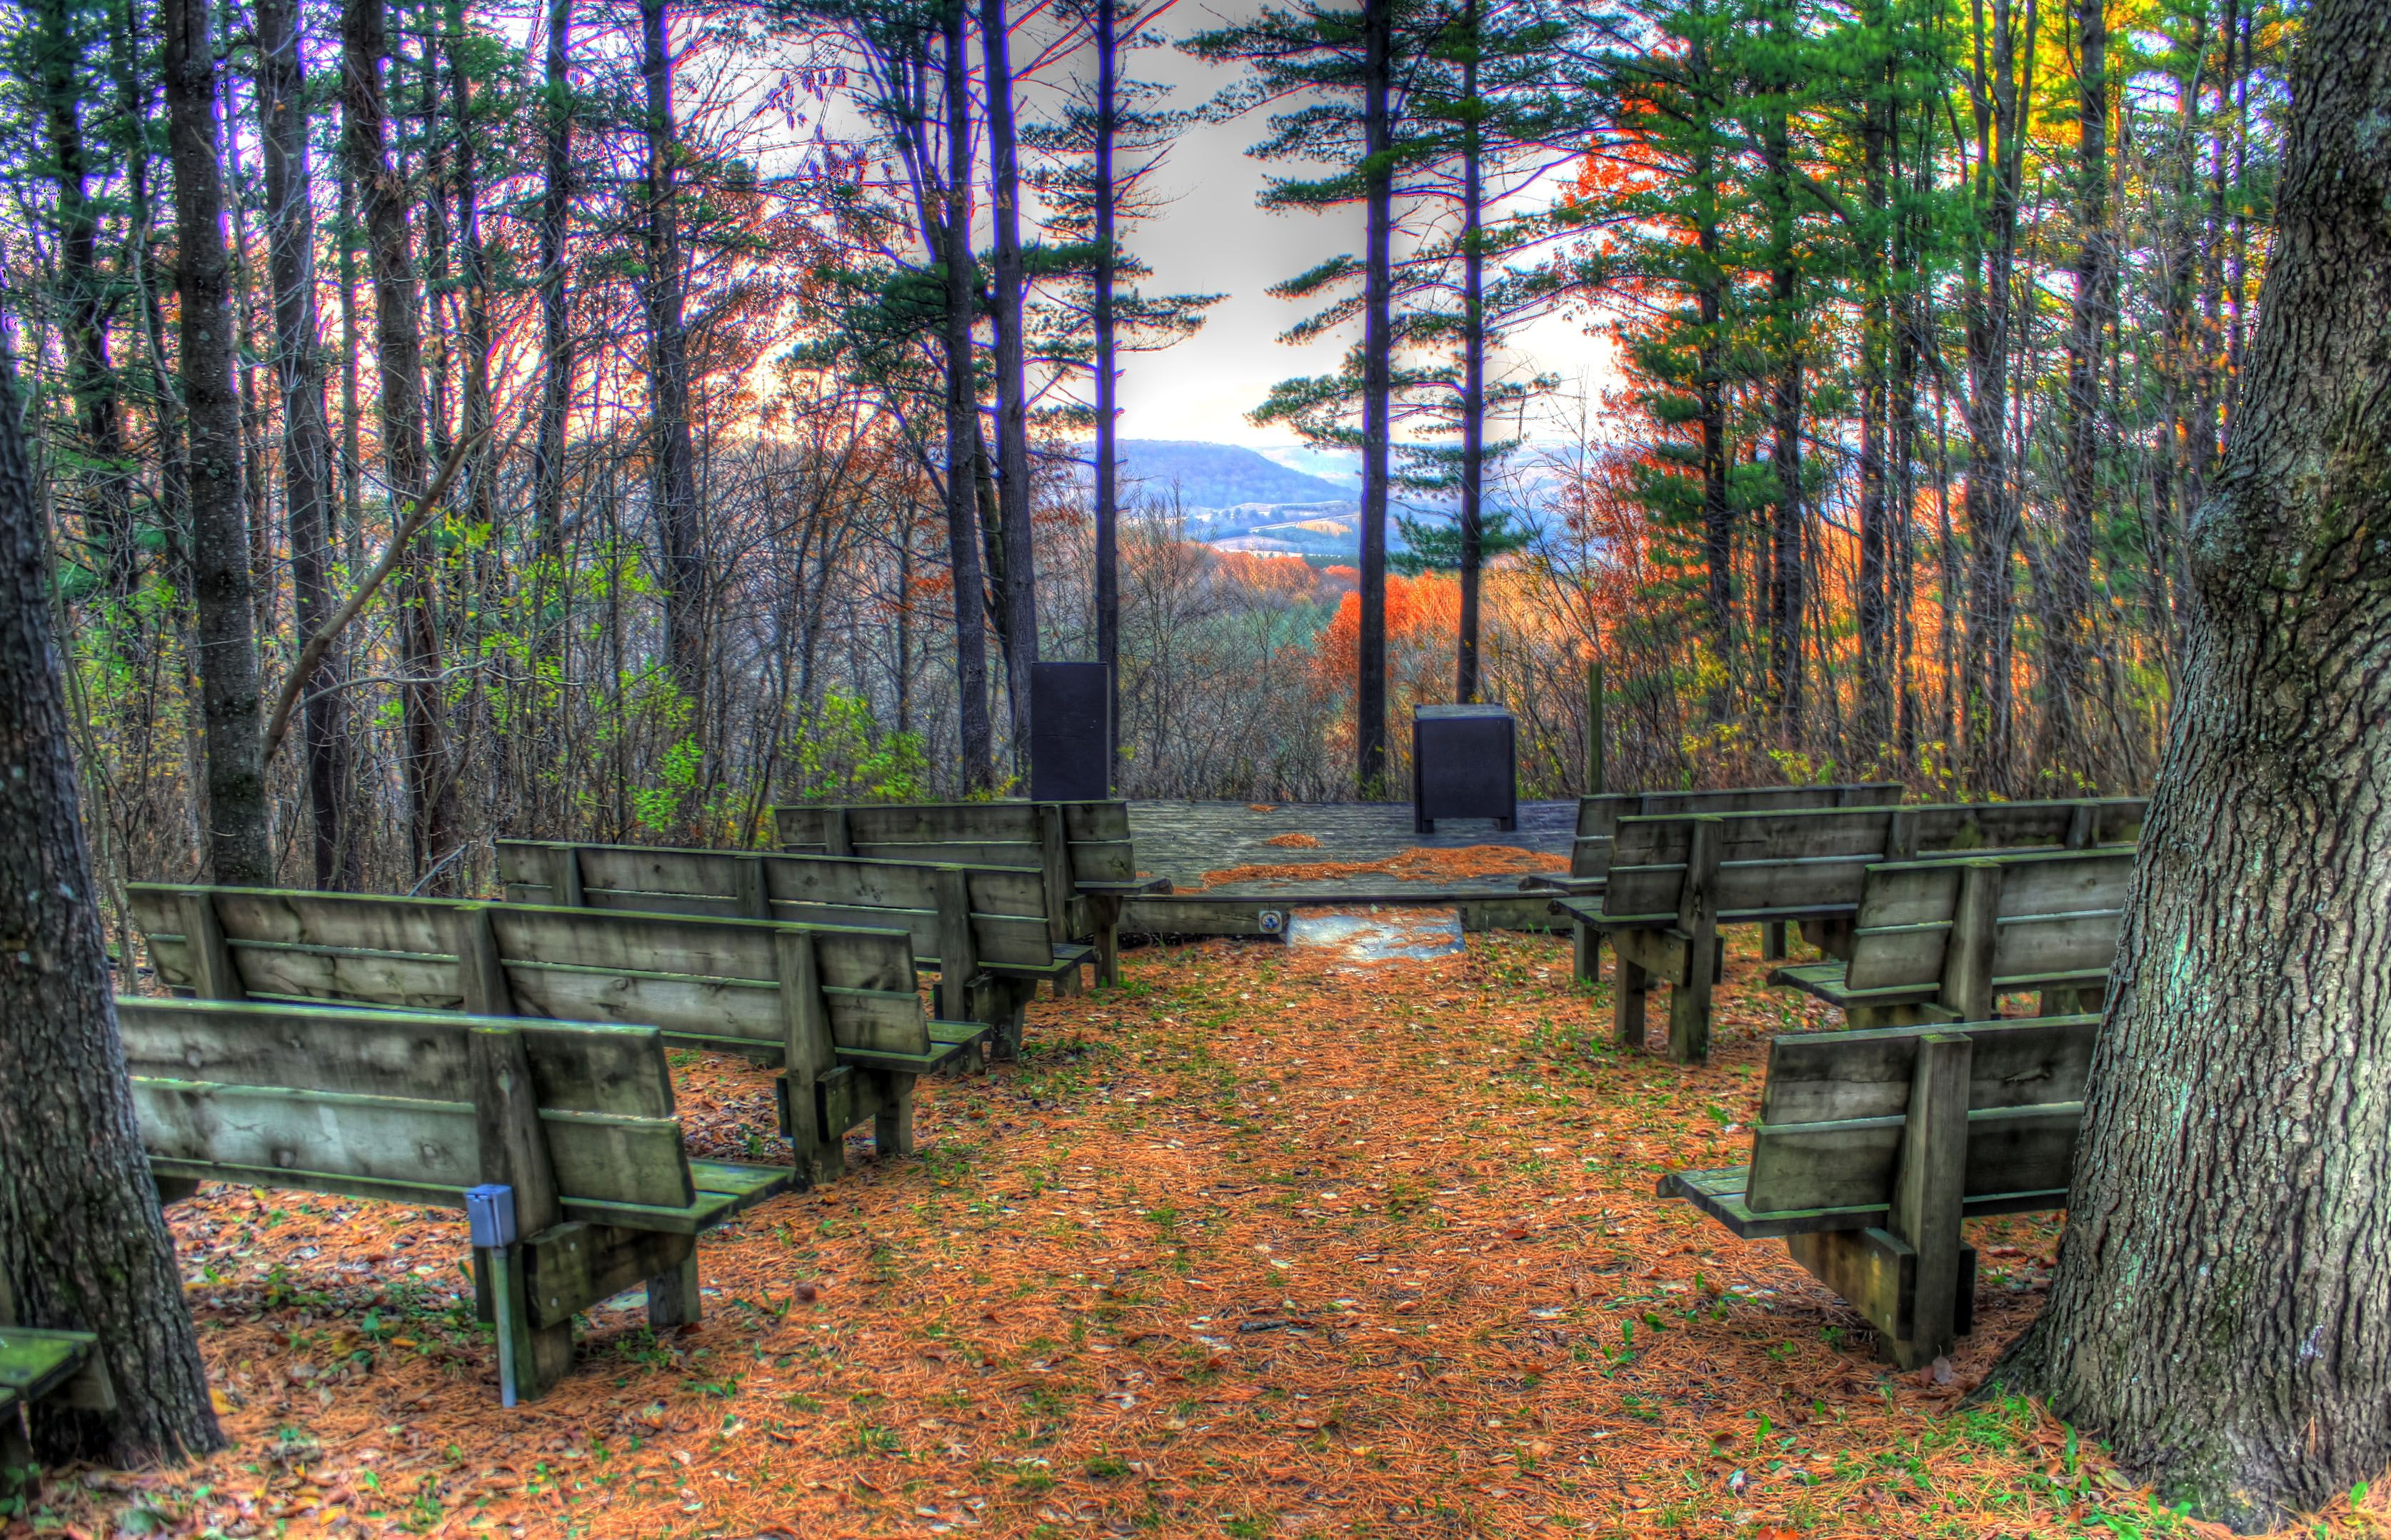 Amphitheatre at wildcat mountain state park wisconsin